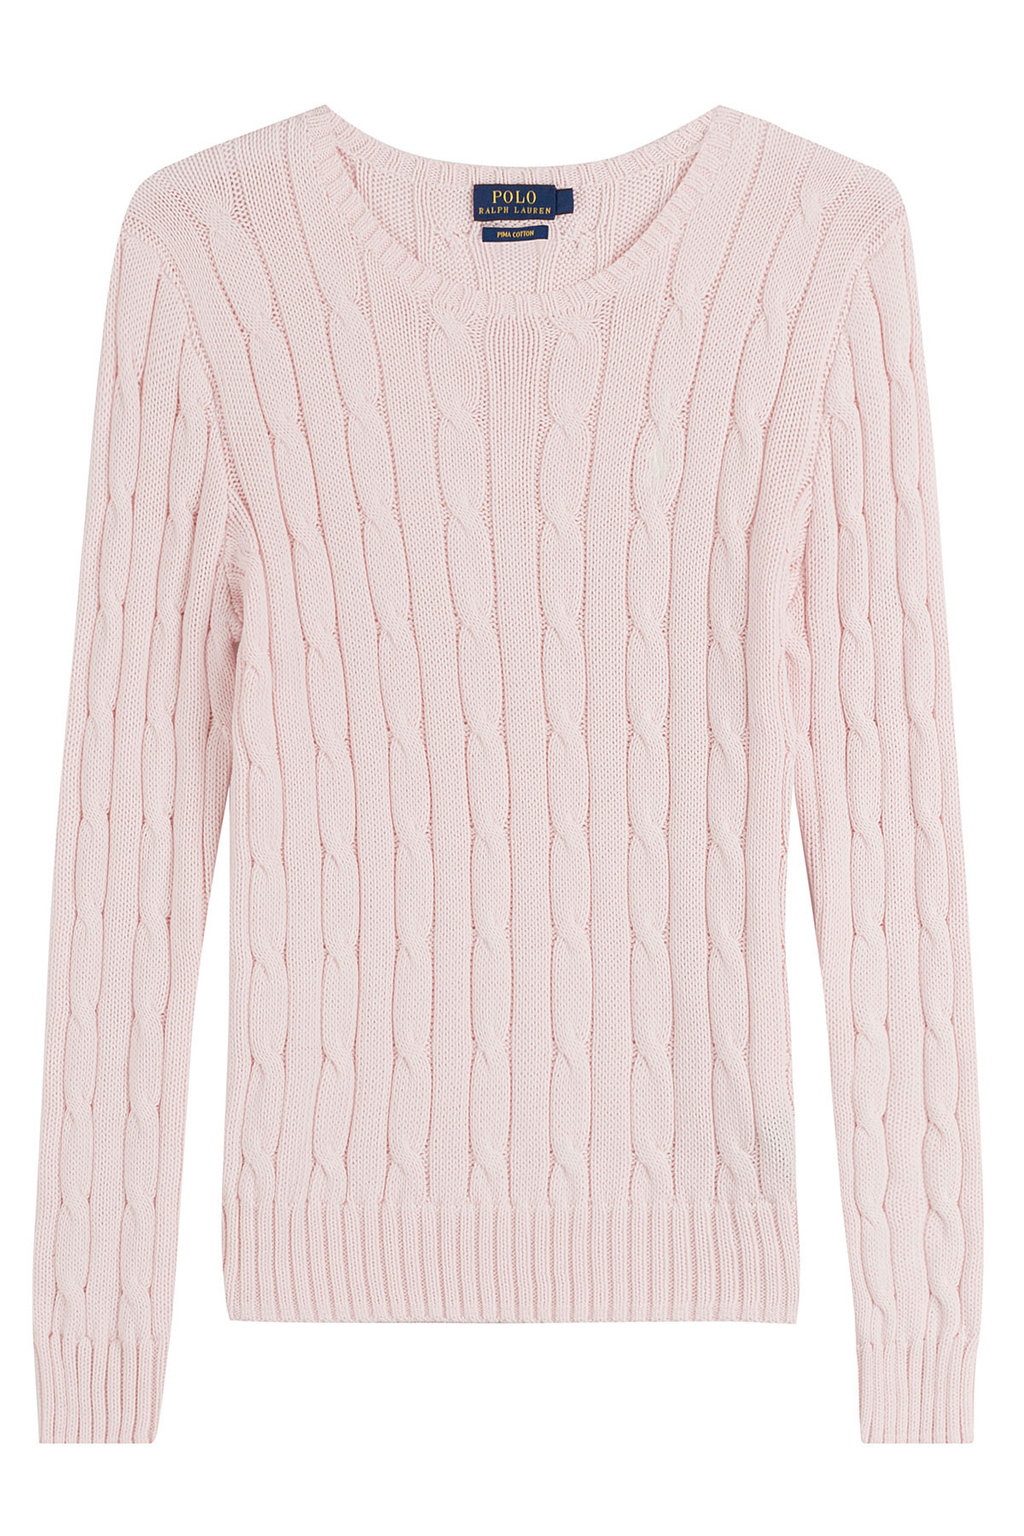 Cotton Cable Knit Pullover Pink - neckline: round neck; style: standard; pattern: cable knit; predominant colour: blush; occasions: casual, work, creative work; length: standard; fibres: cotton - 100%; fit: standard fit; sleeve length: long sleeve; sleeve style: standard; texture group: knits/crochet; pattern type: knitted - fine stitch; pattern size: standard; season: s/s 2016